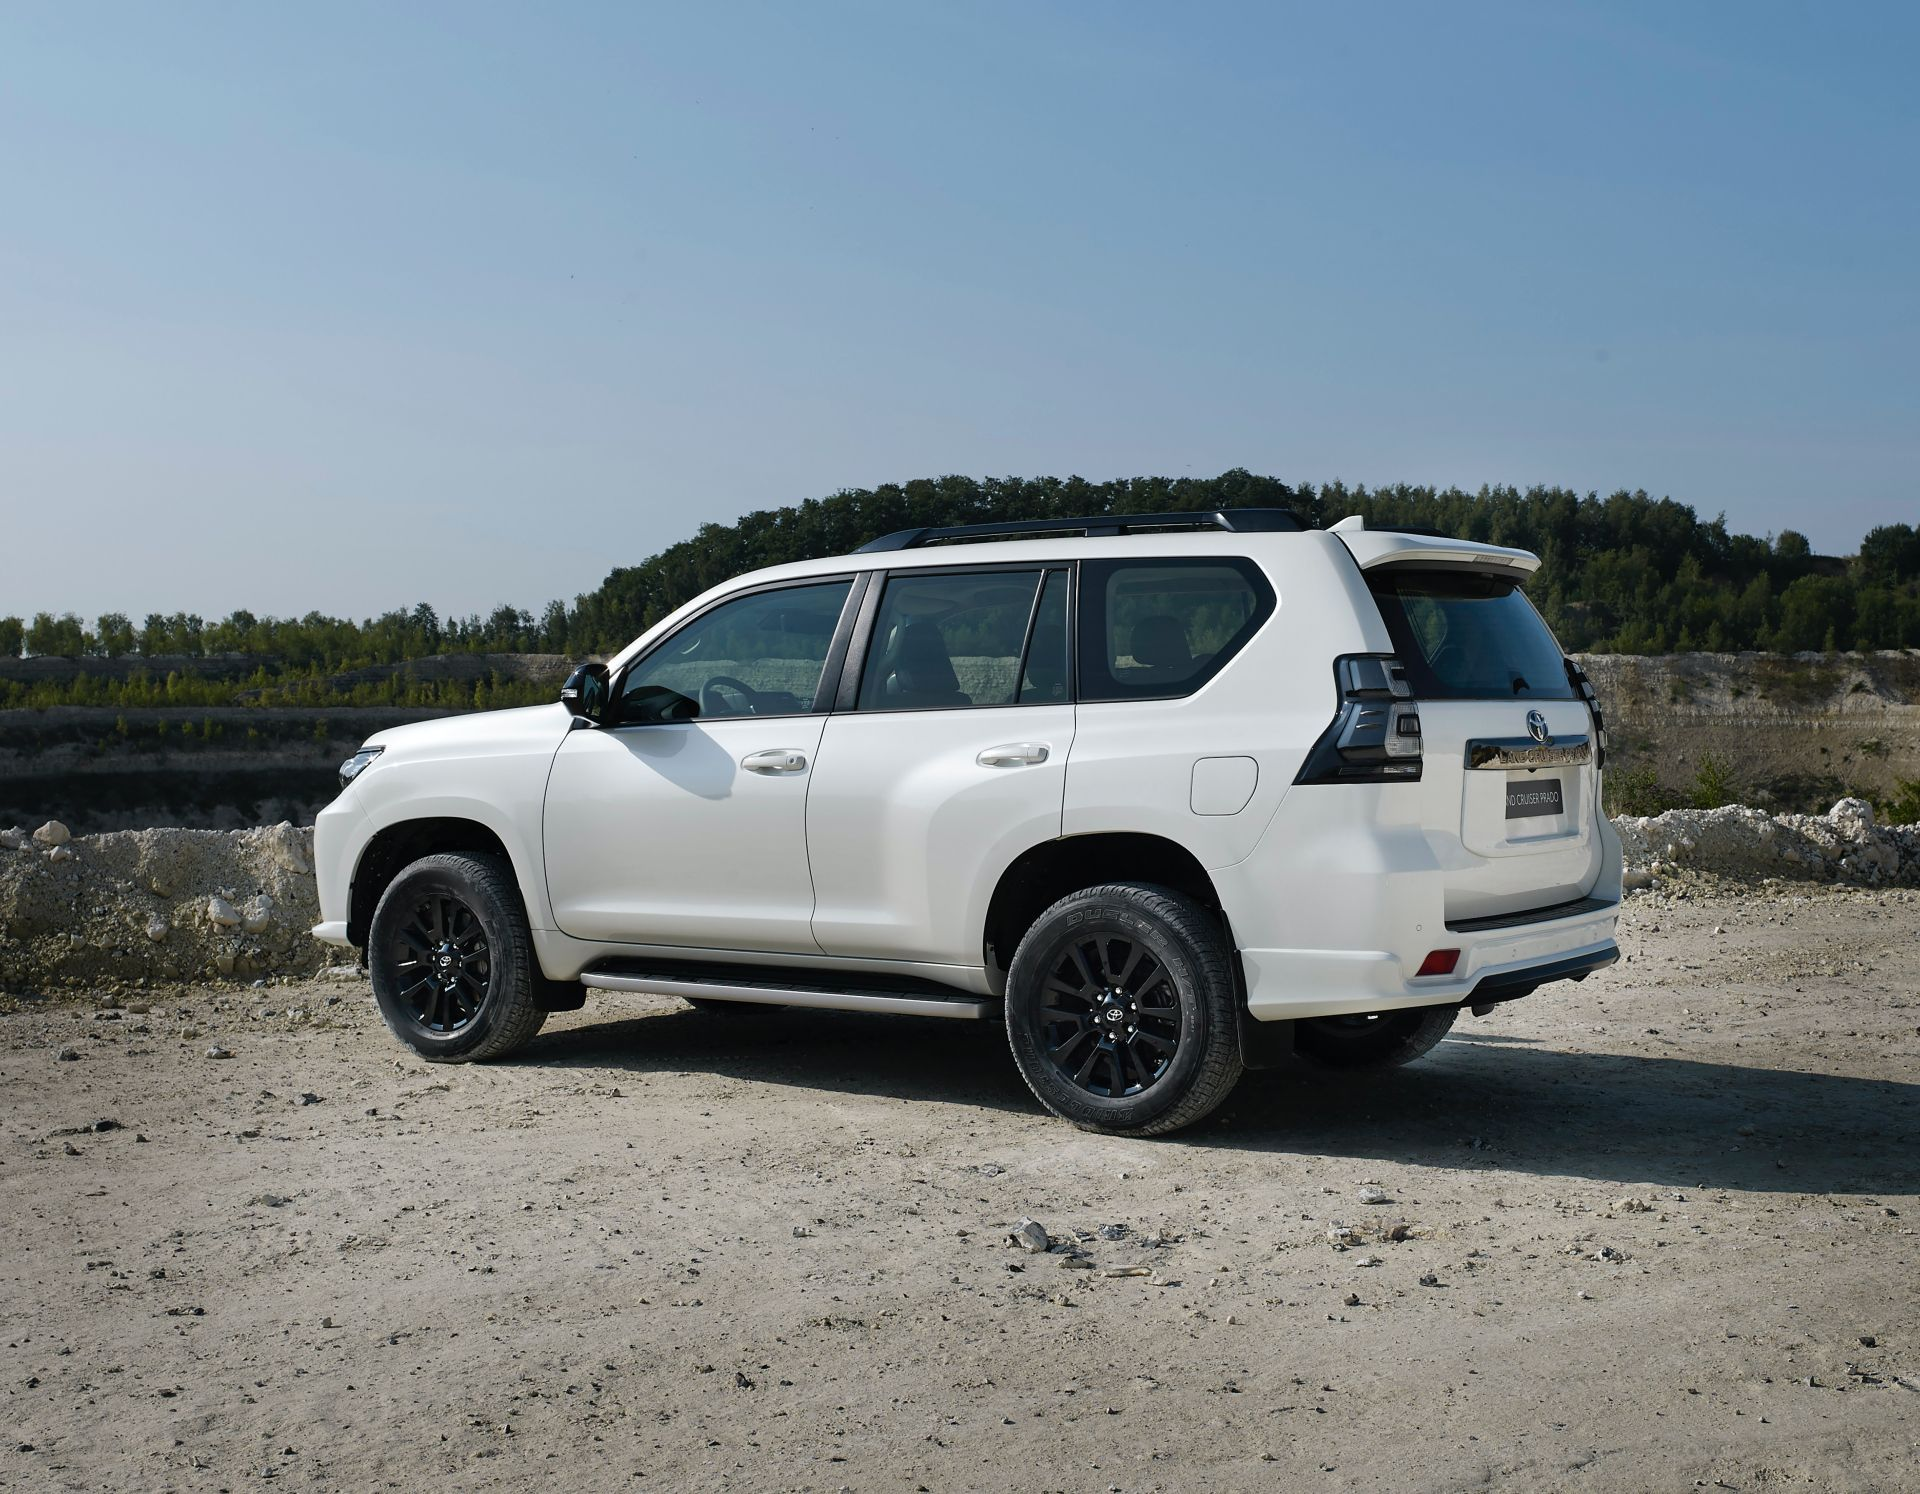 Toyota-Land-Cruiser-euro-2021-67